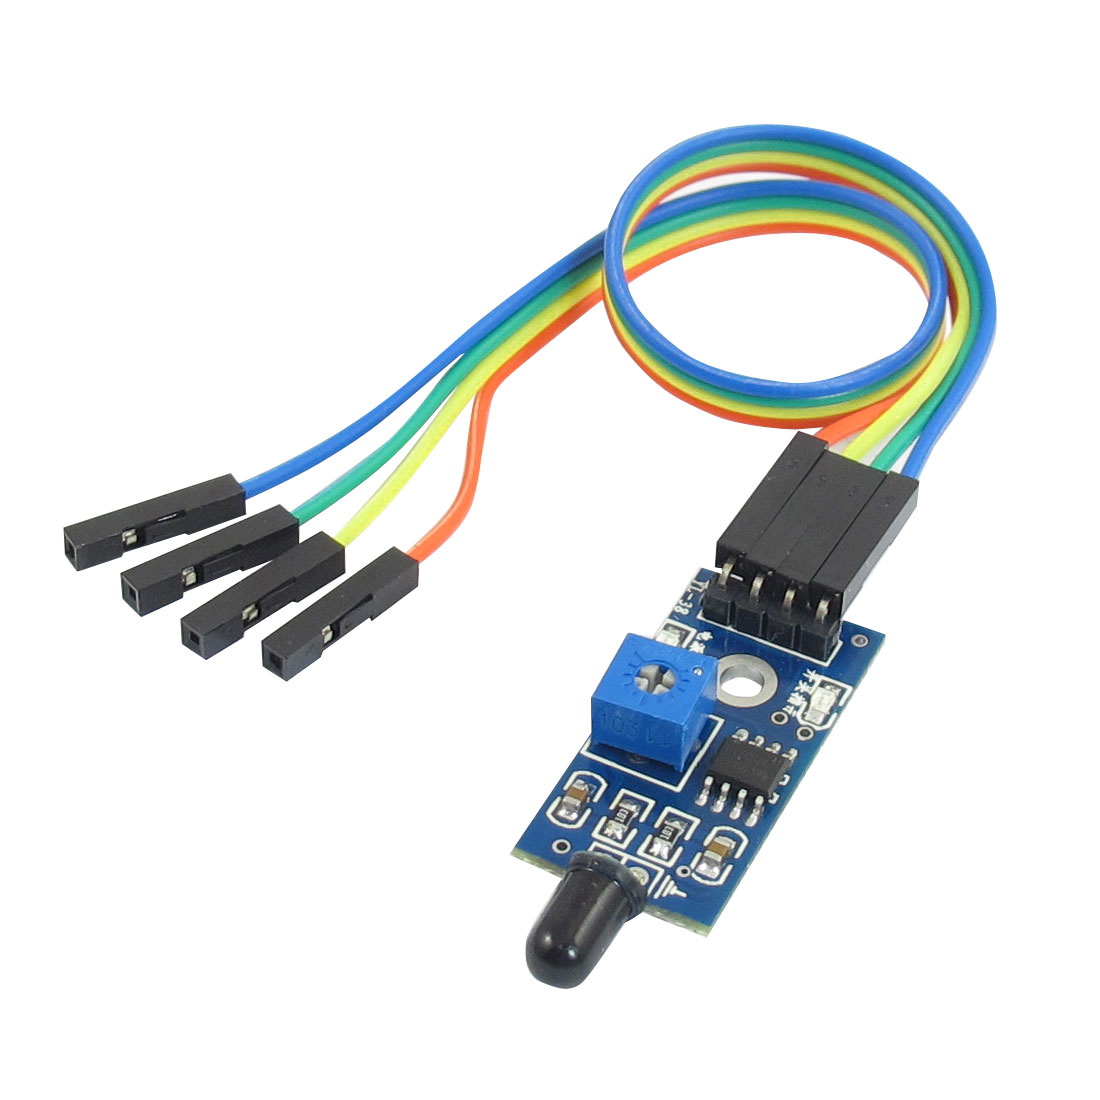 5V 4 Pins 2 Channel LM393 Chip Infrared IR Light Flame Sensor Module w Cable